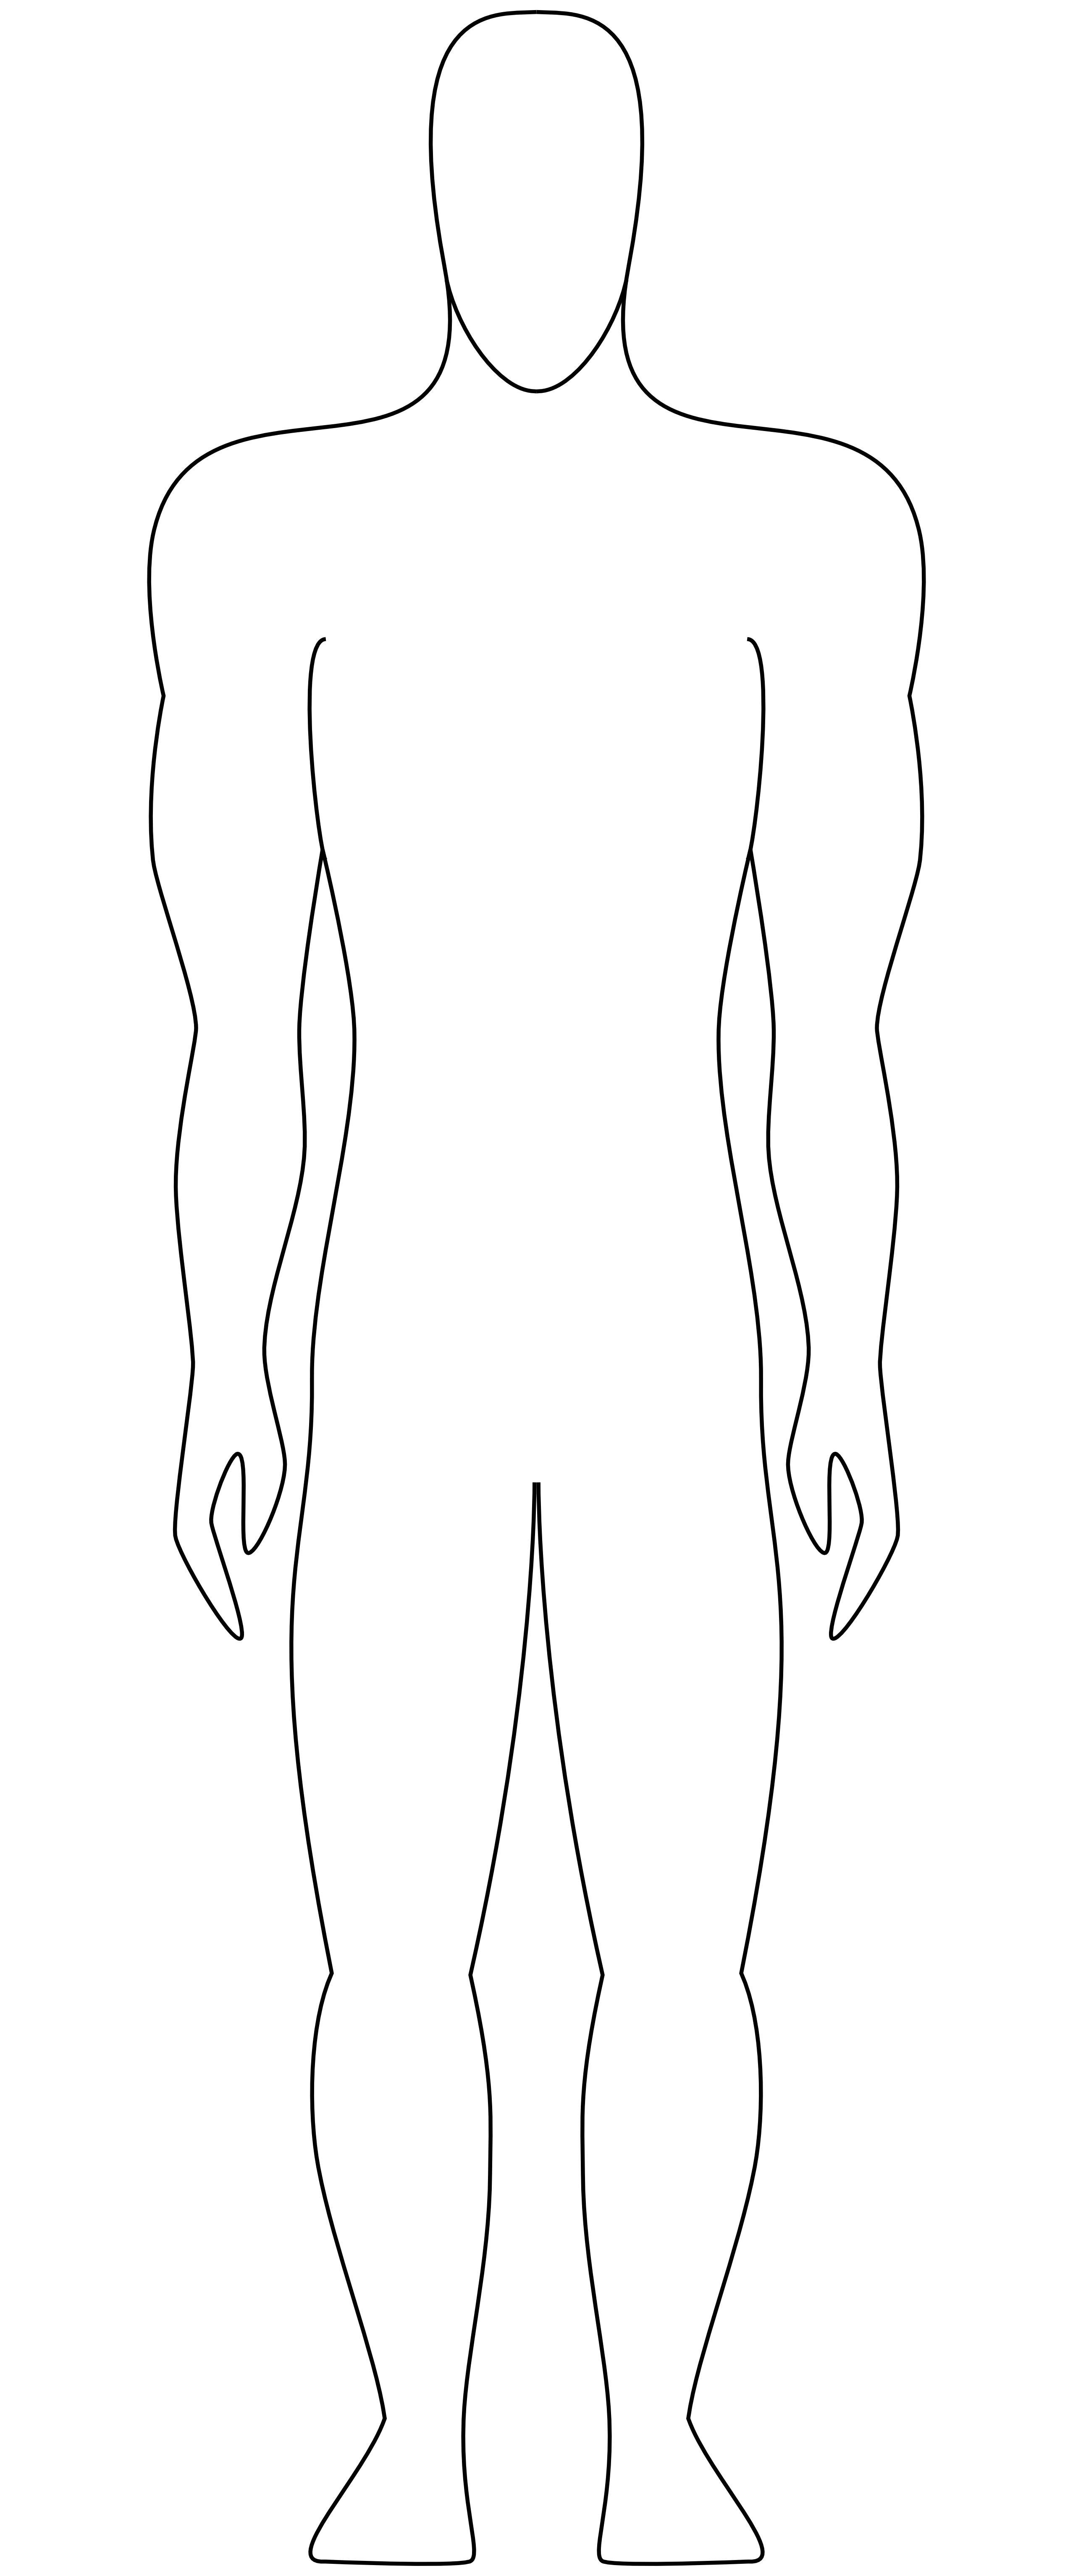 Outline of the human body clipart images gallery for free download.